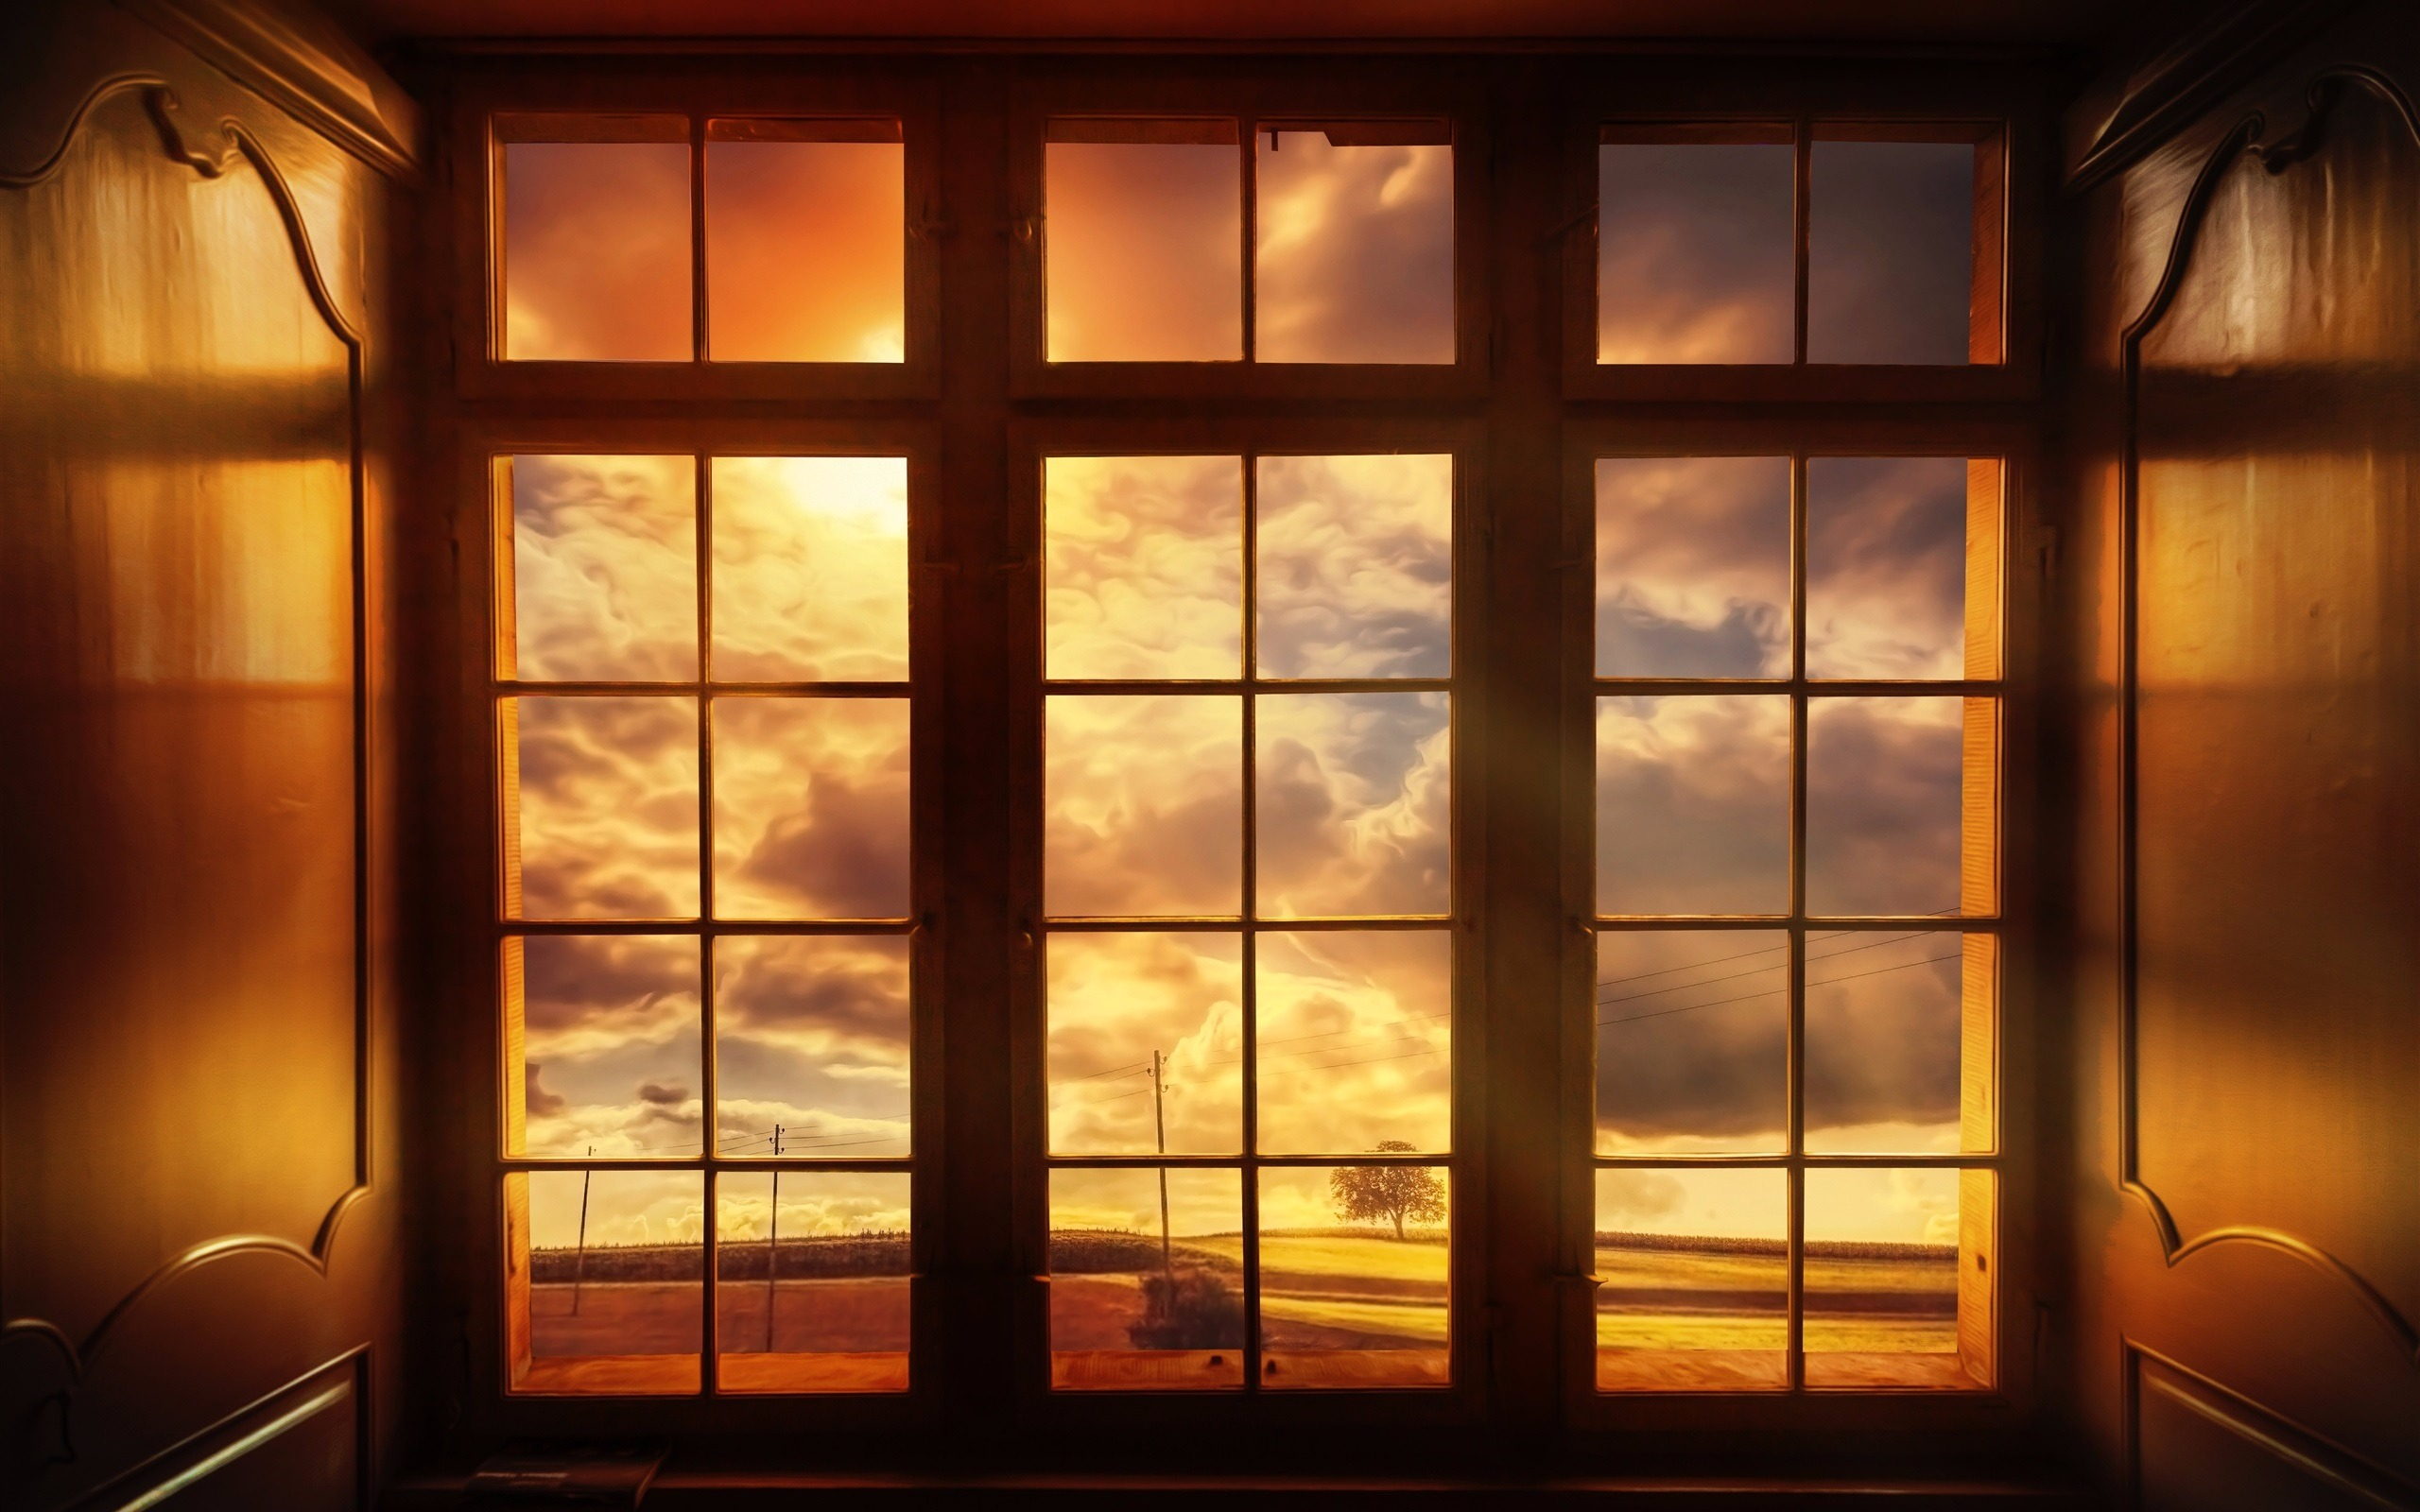 The World Outside Window Full HD Wallpaper And Background Image